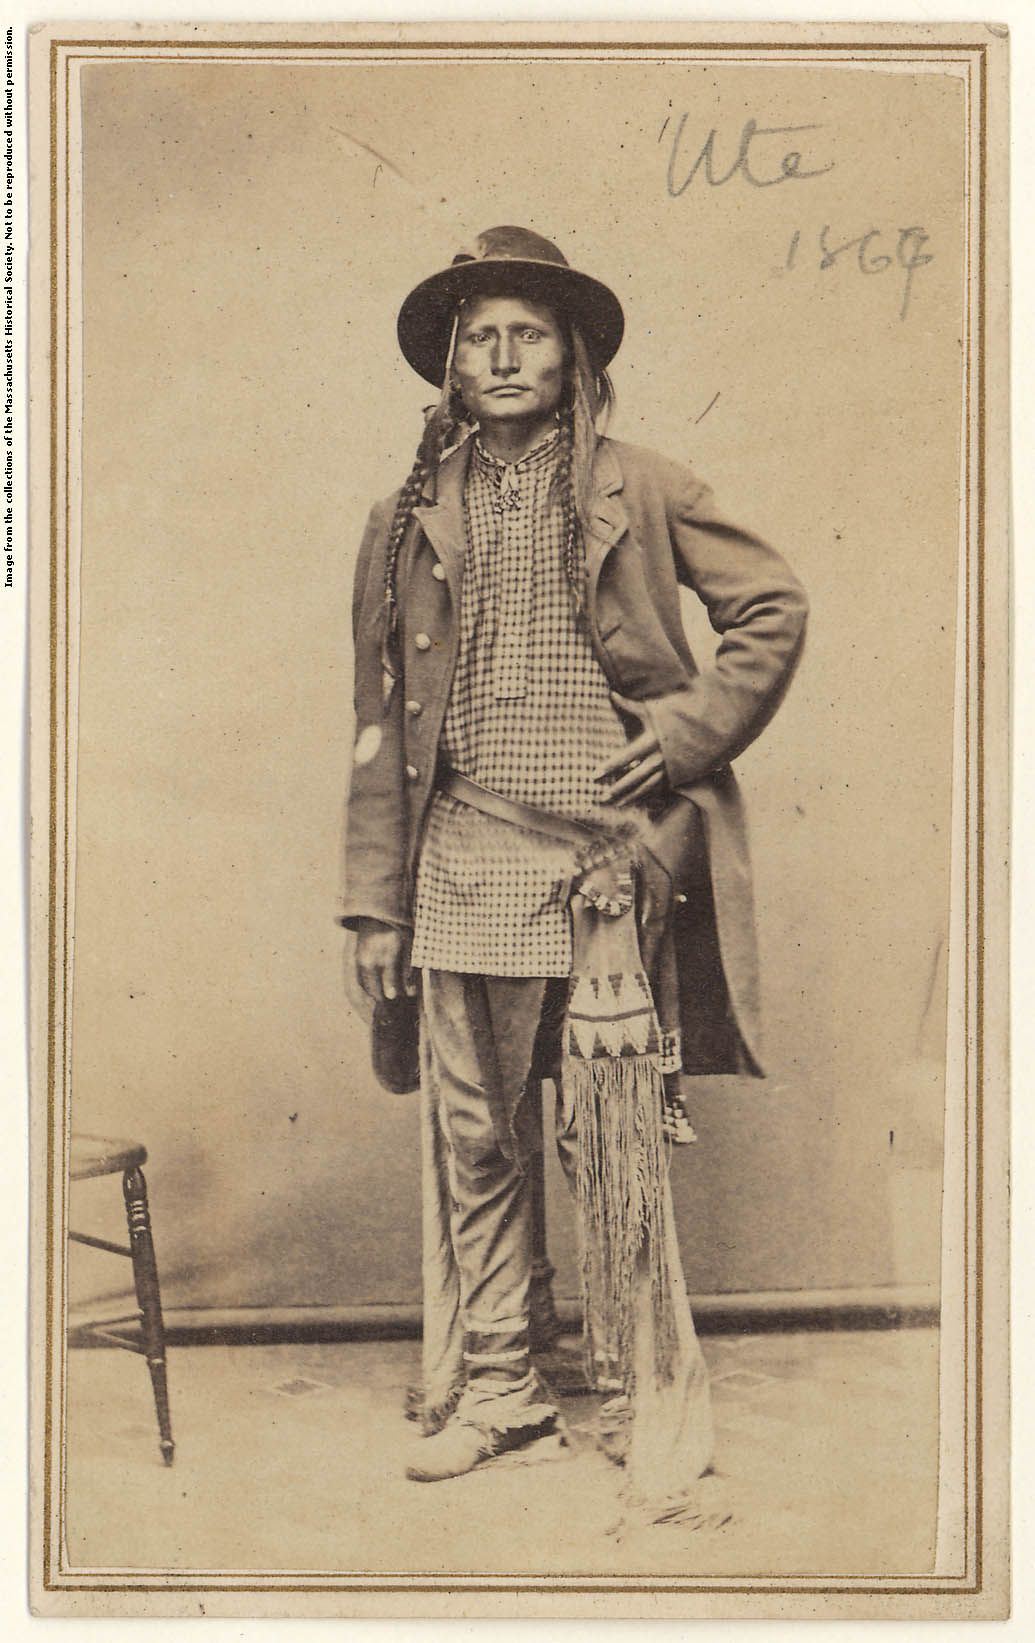 Ute Man Carte De Visite By C F Alter 1867